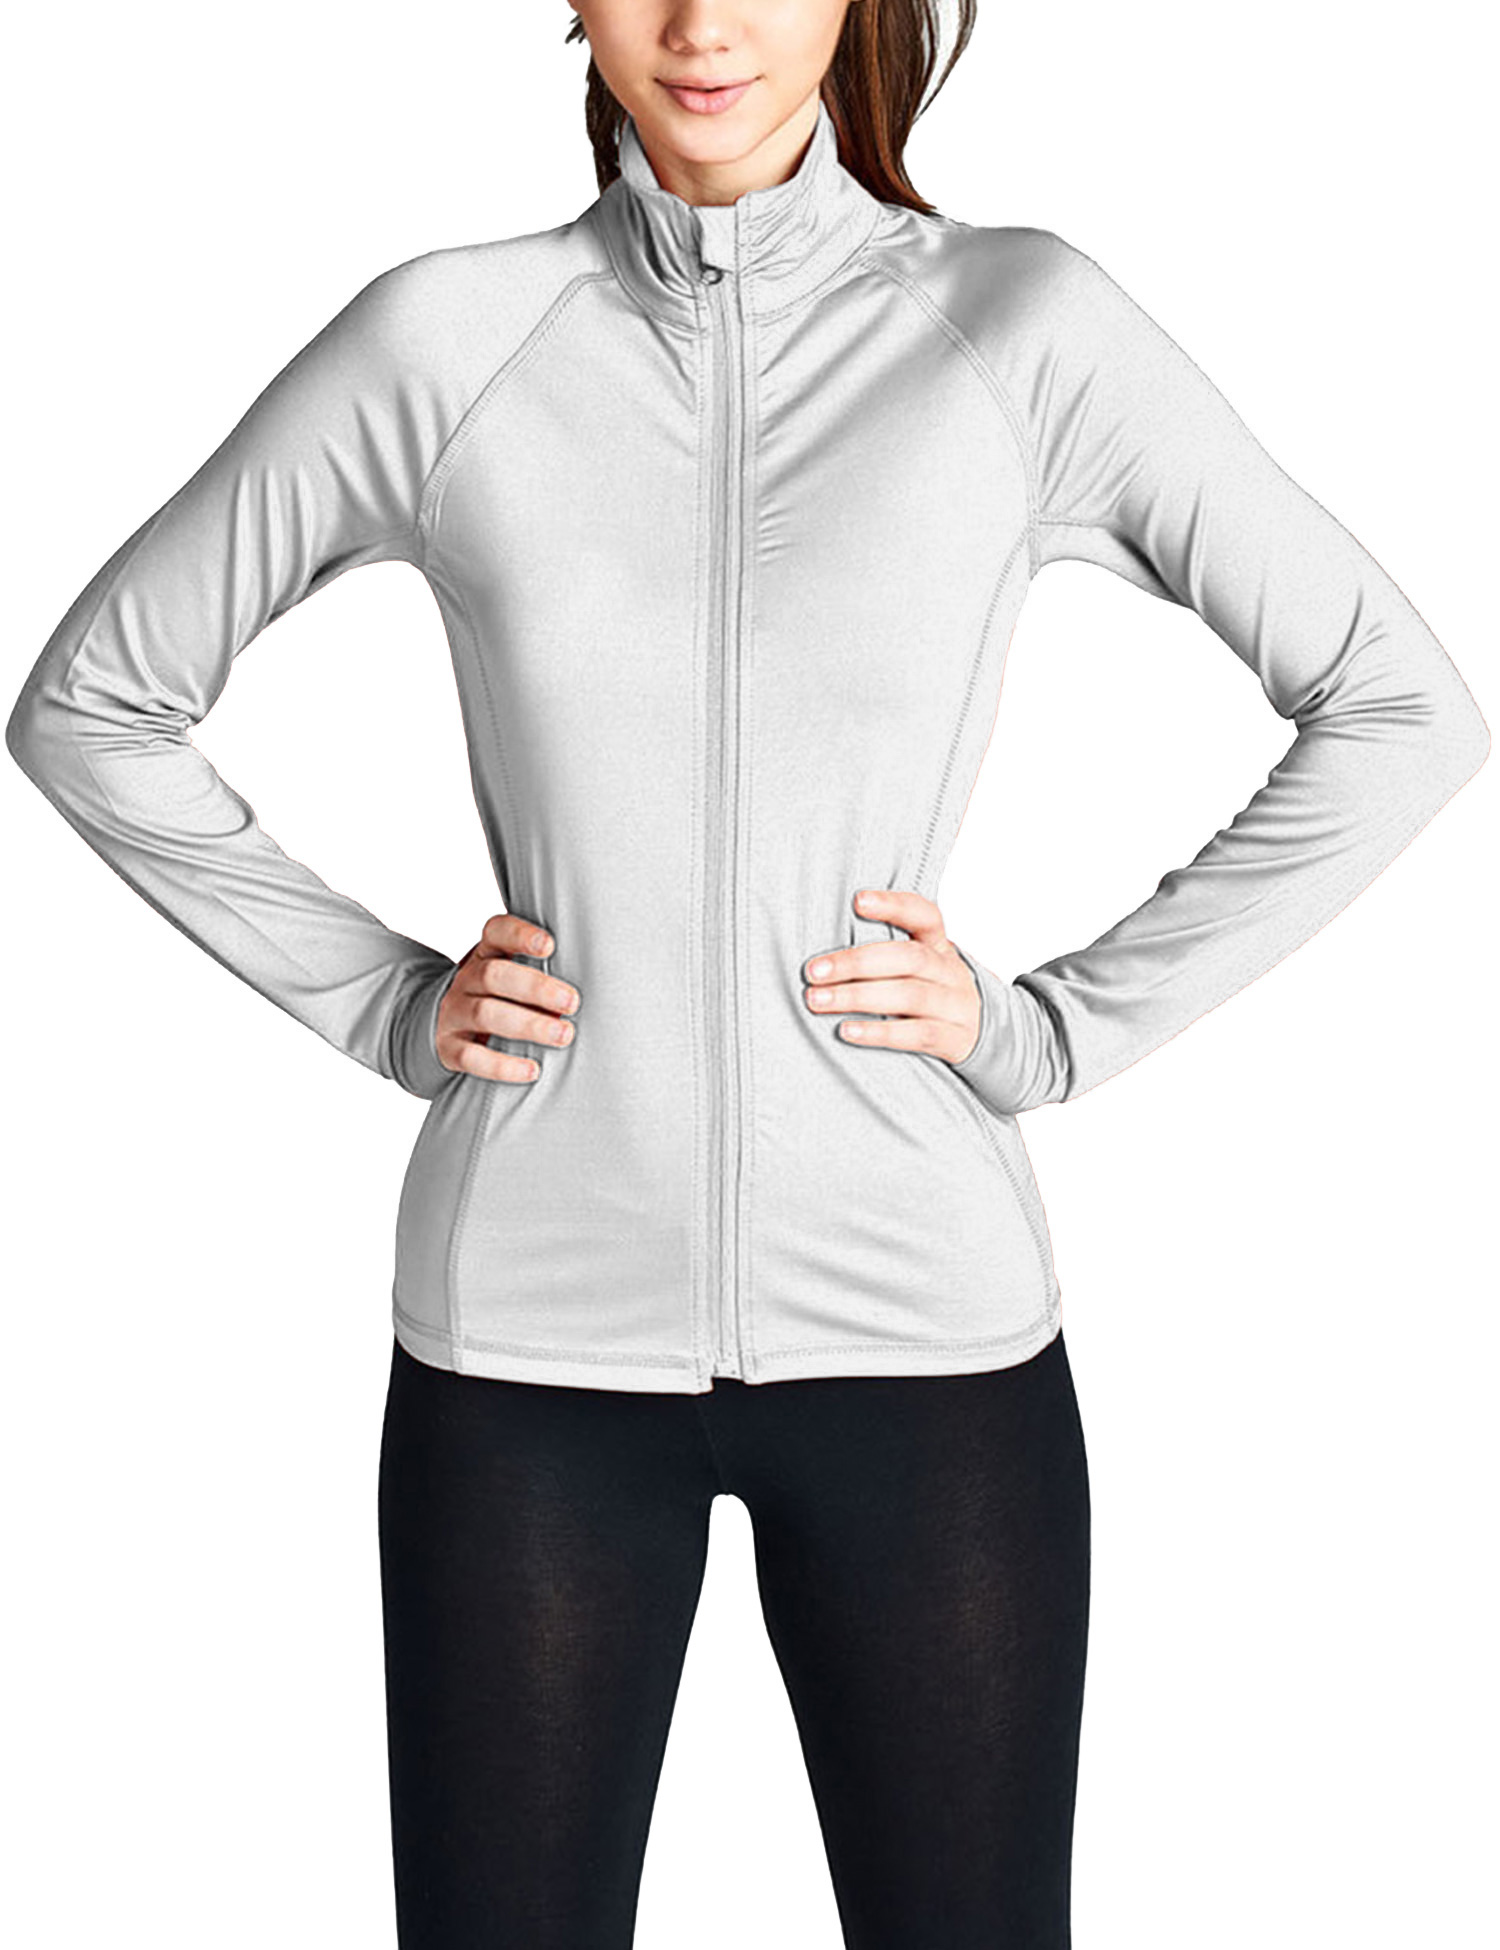 KOGMO Womens Performance Zip Up Stretchy Work Out Track Jacket